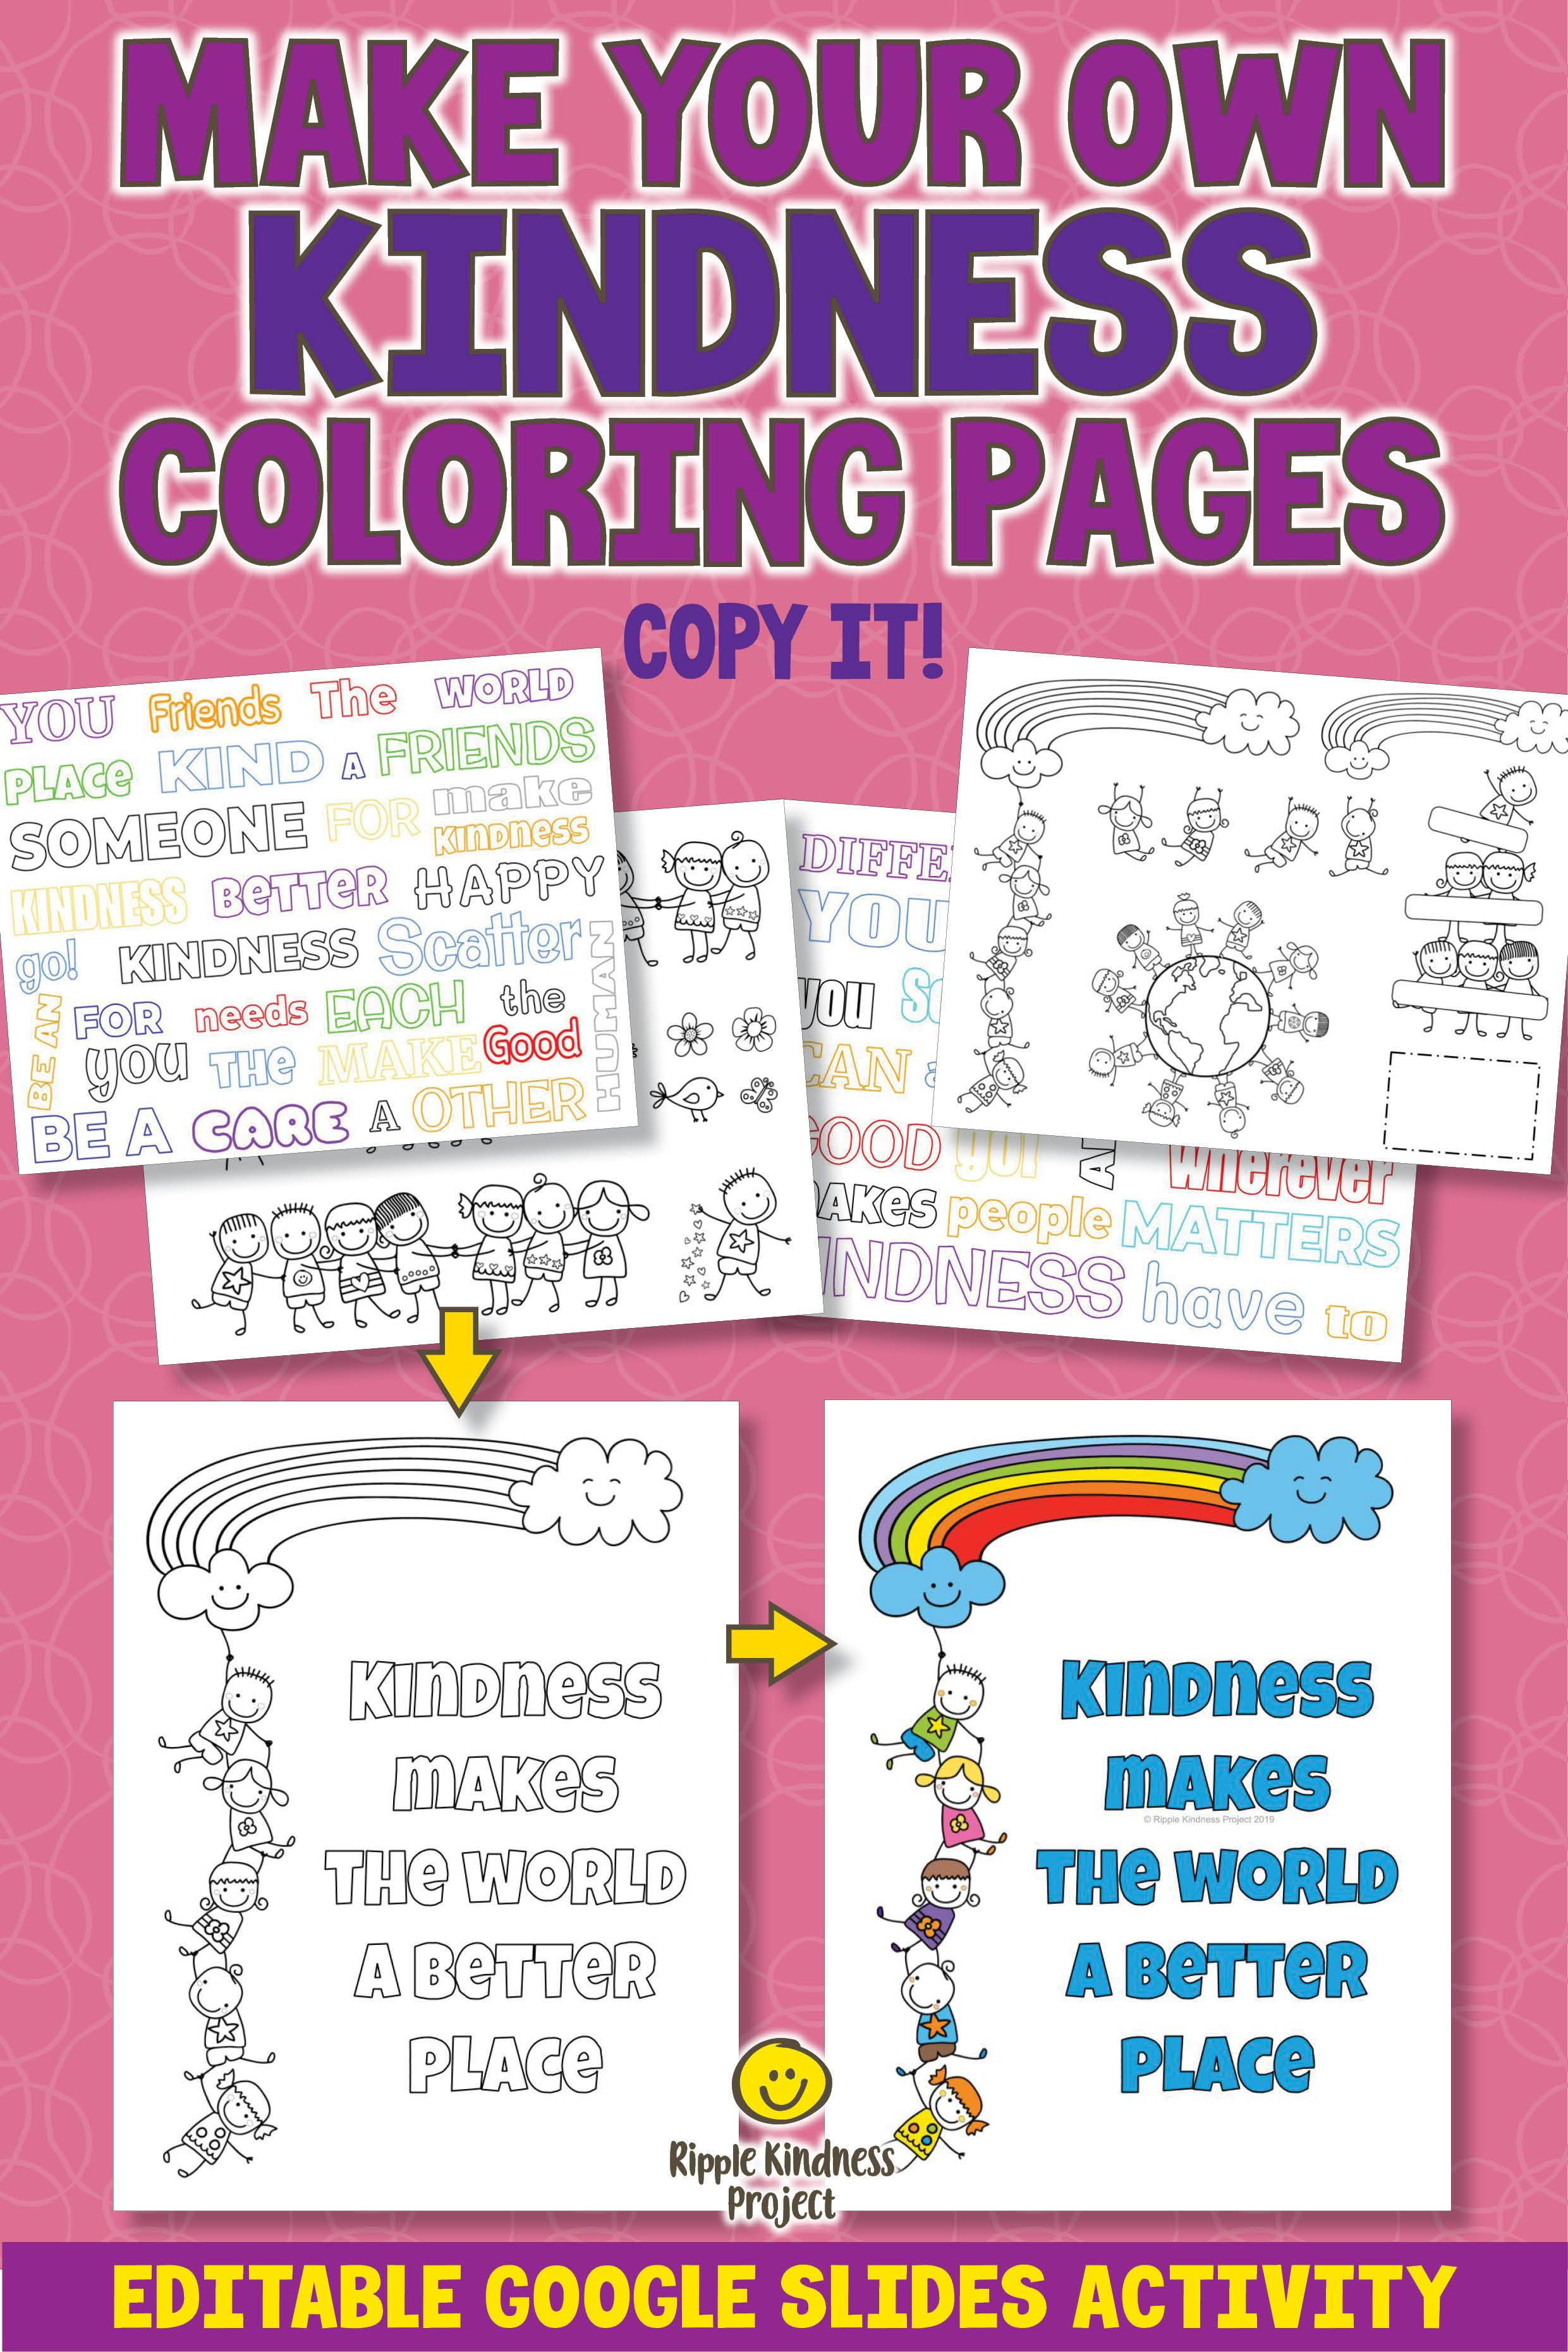 Make Your Own Kindness Coloring Pages